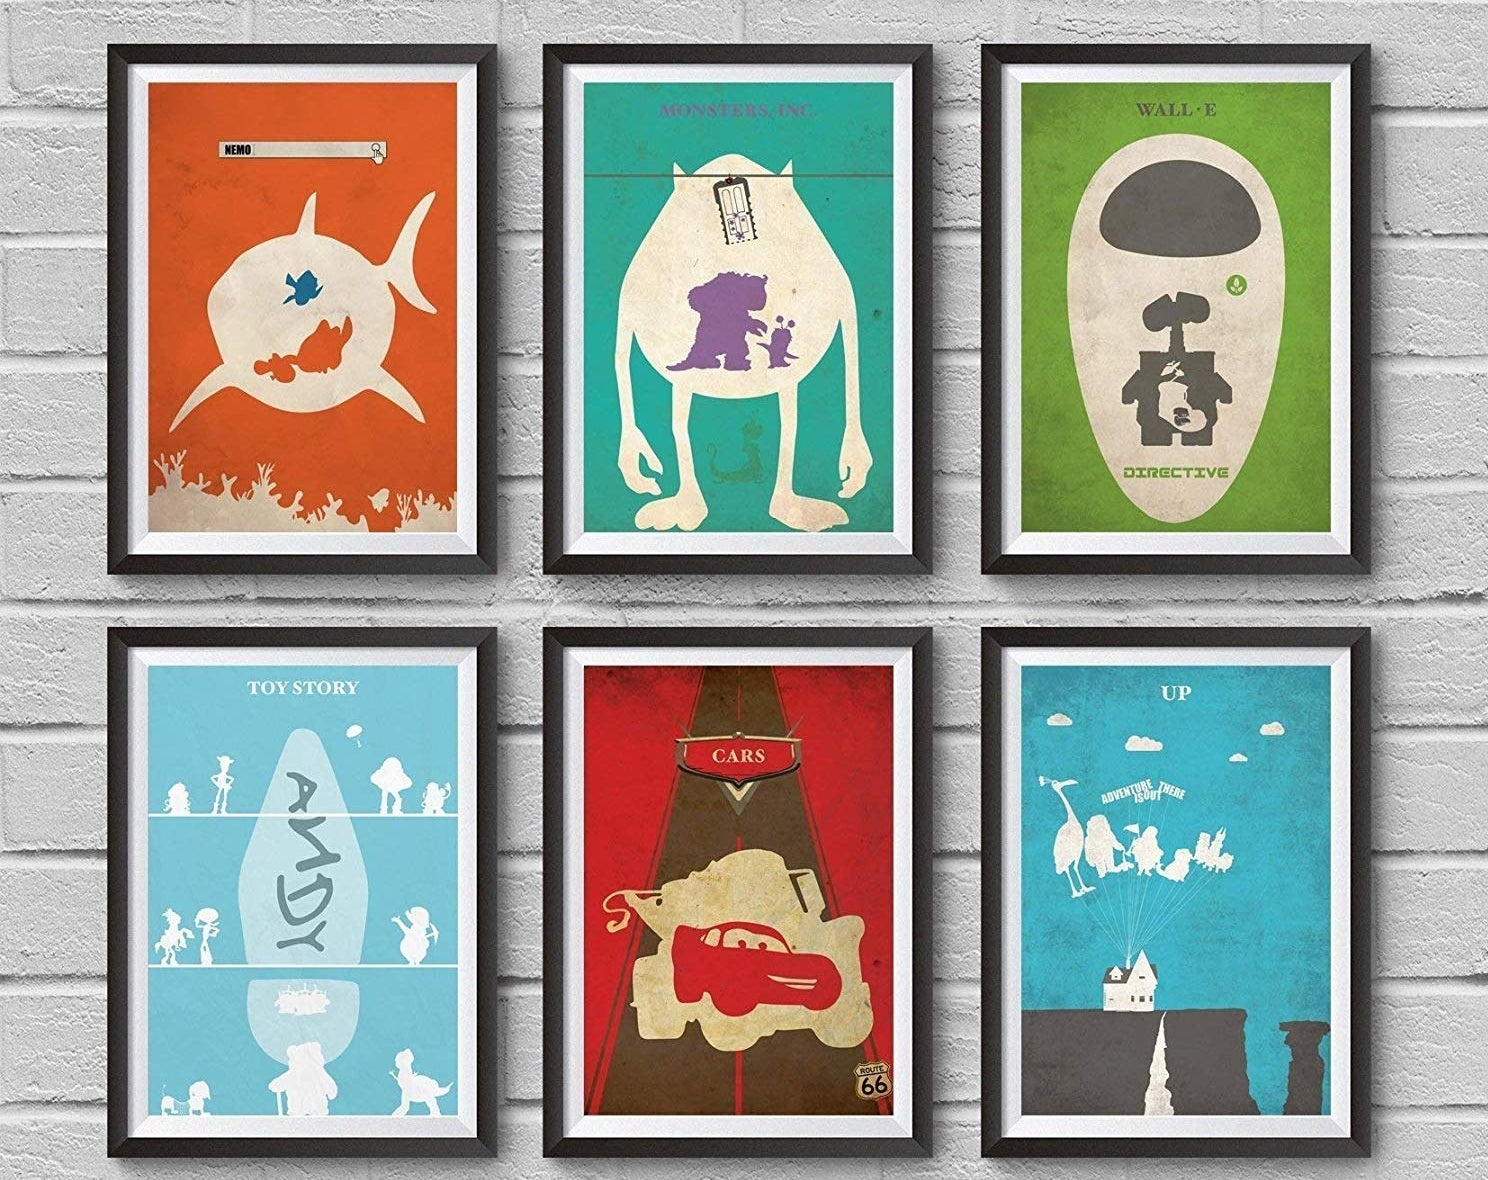 six different posters showcasing pixar films